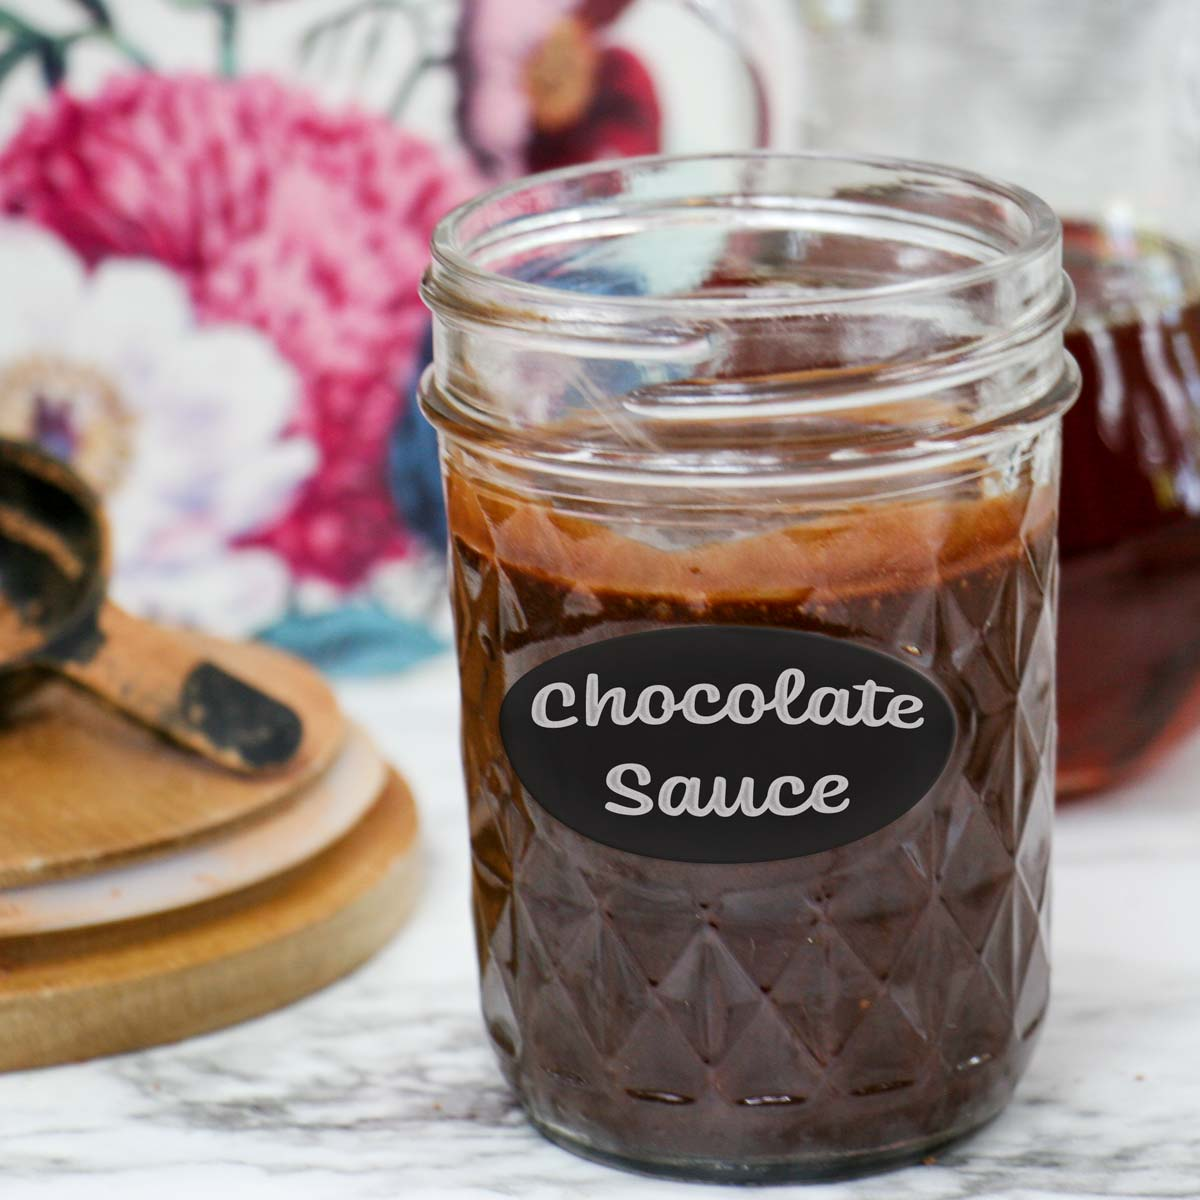 Healthy Vegan 2 Ingredient Chocolate Sauce with Cacao Powder